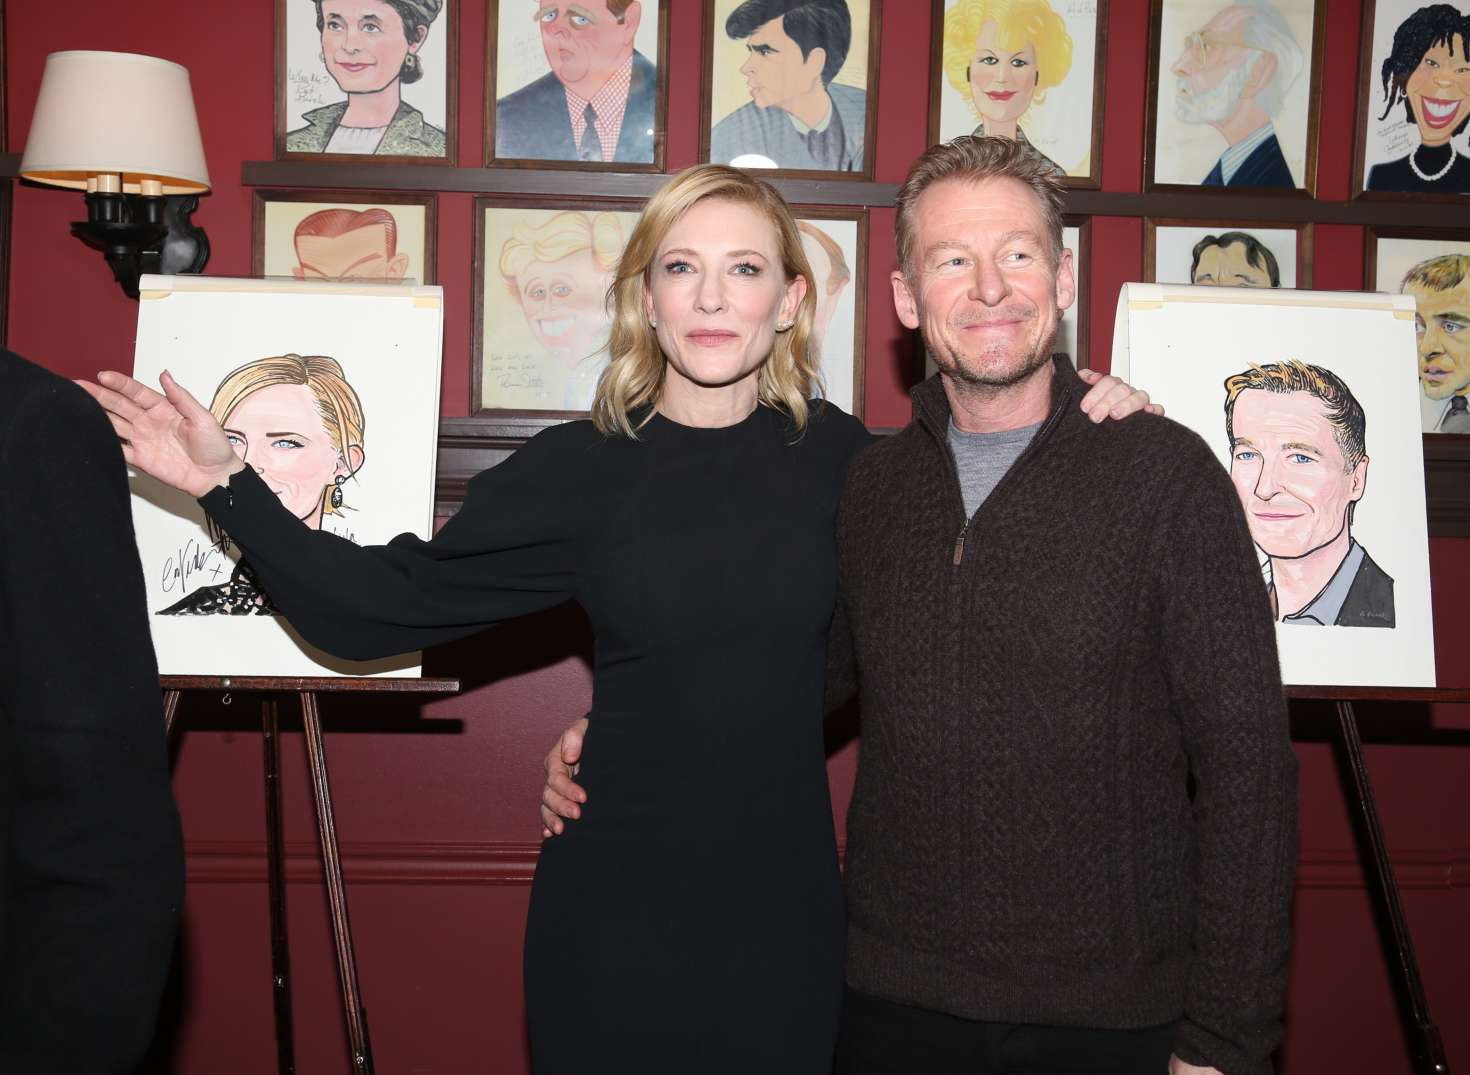 Cate Blanchett and Richard Roxburgh Sardi's caricature unveiling in NYC